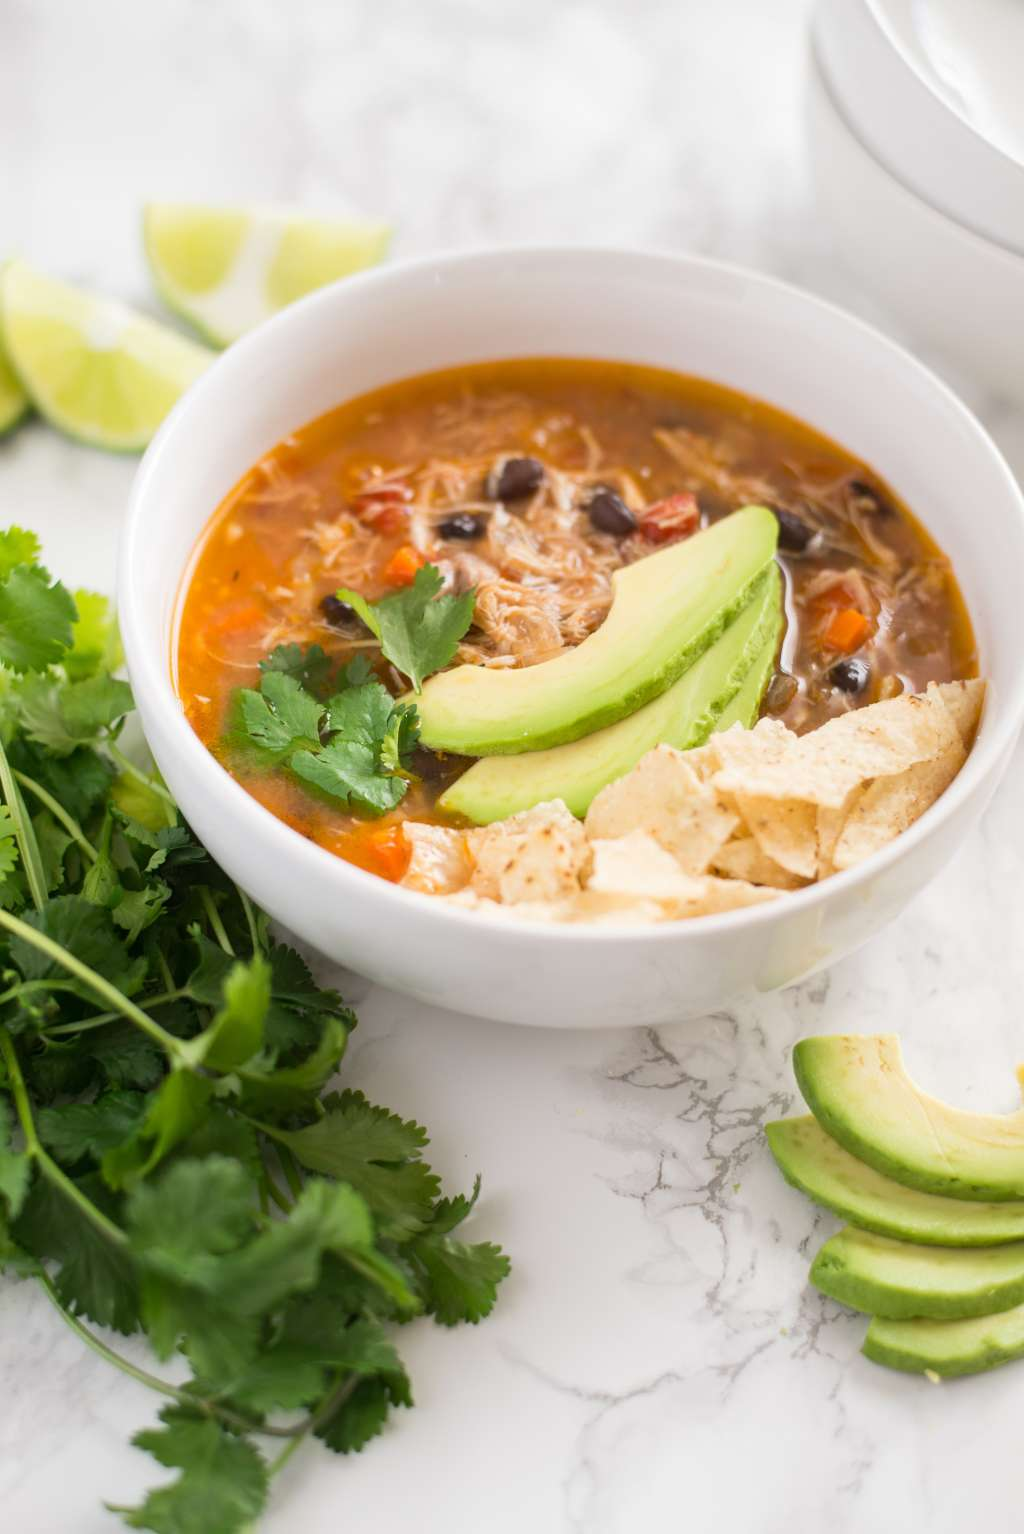 Recipe: Slow-Cooker Chicken Tortilla Soup